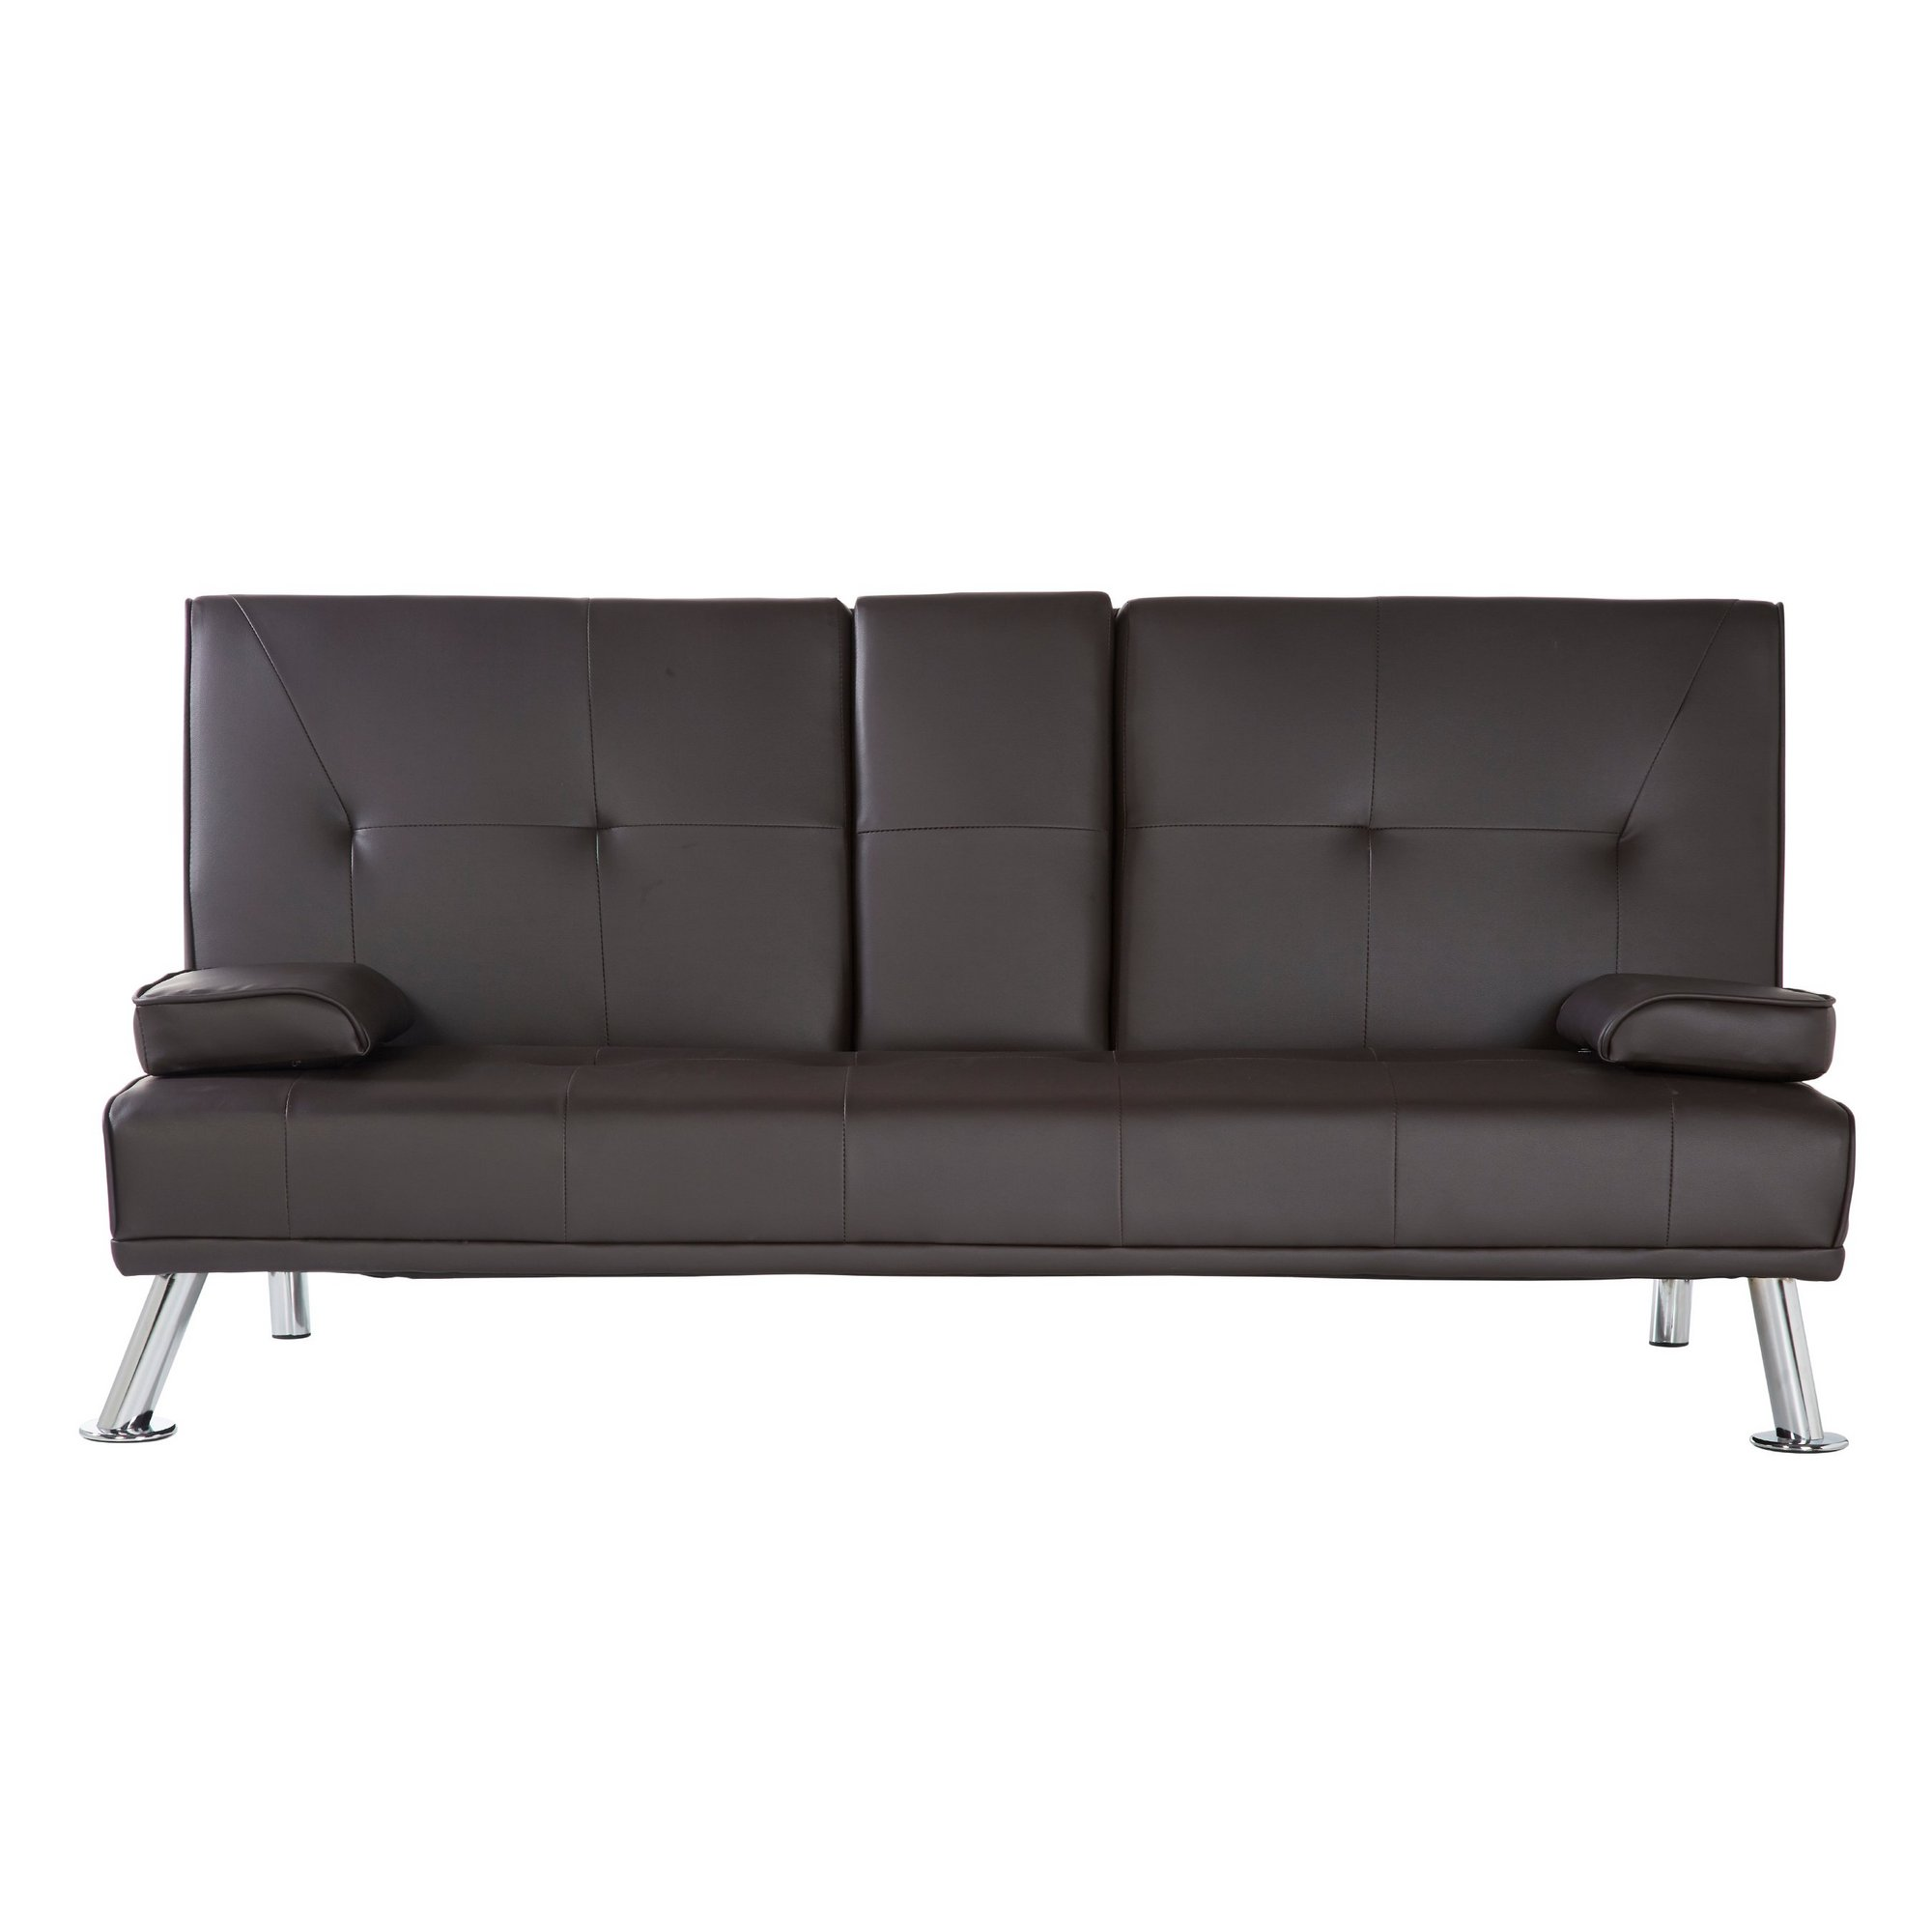 Image of Sofa Bed with Cup Holder Armrest